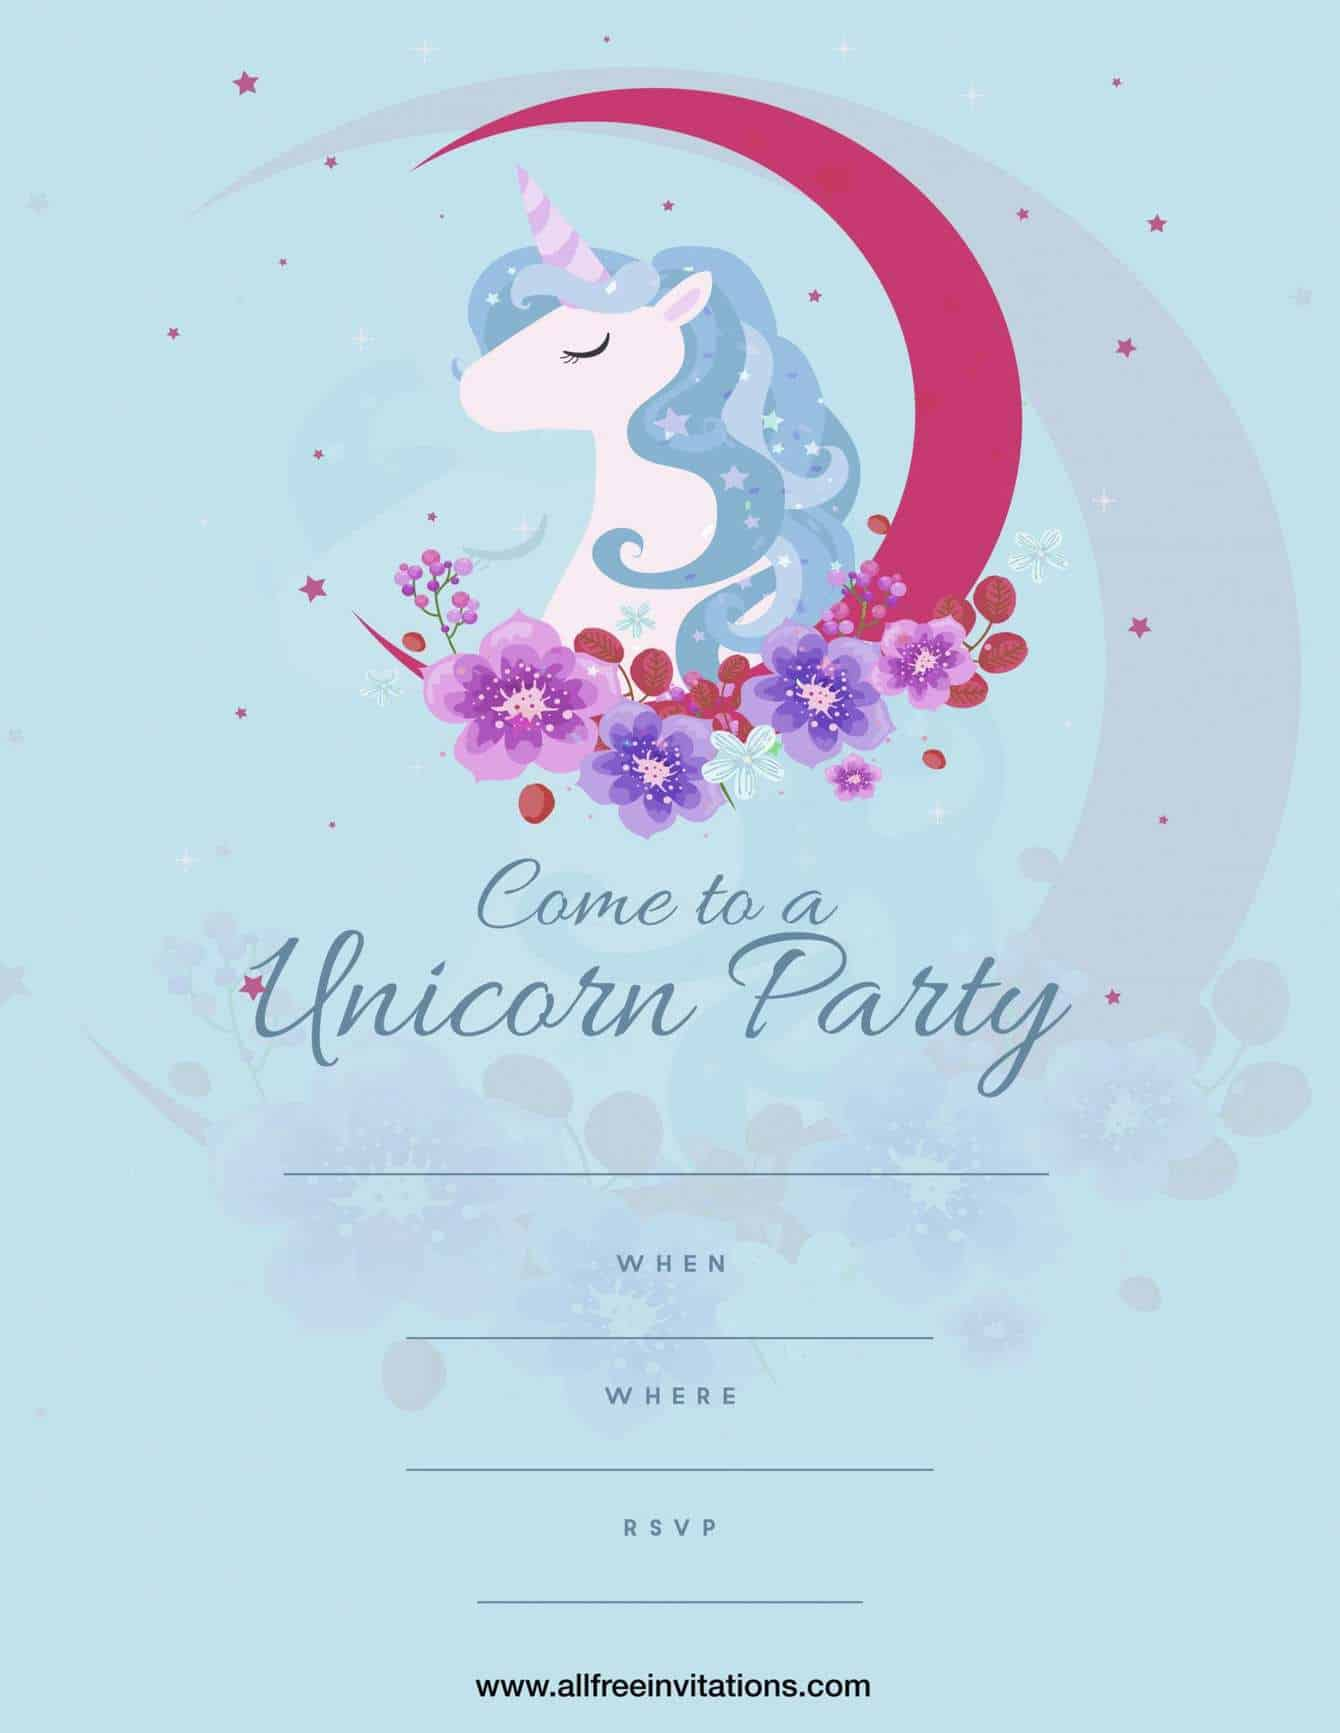 Kids birthday party invitation pink moon unicorn design